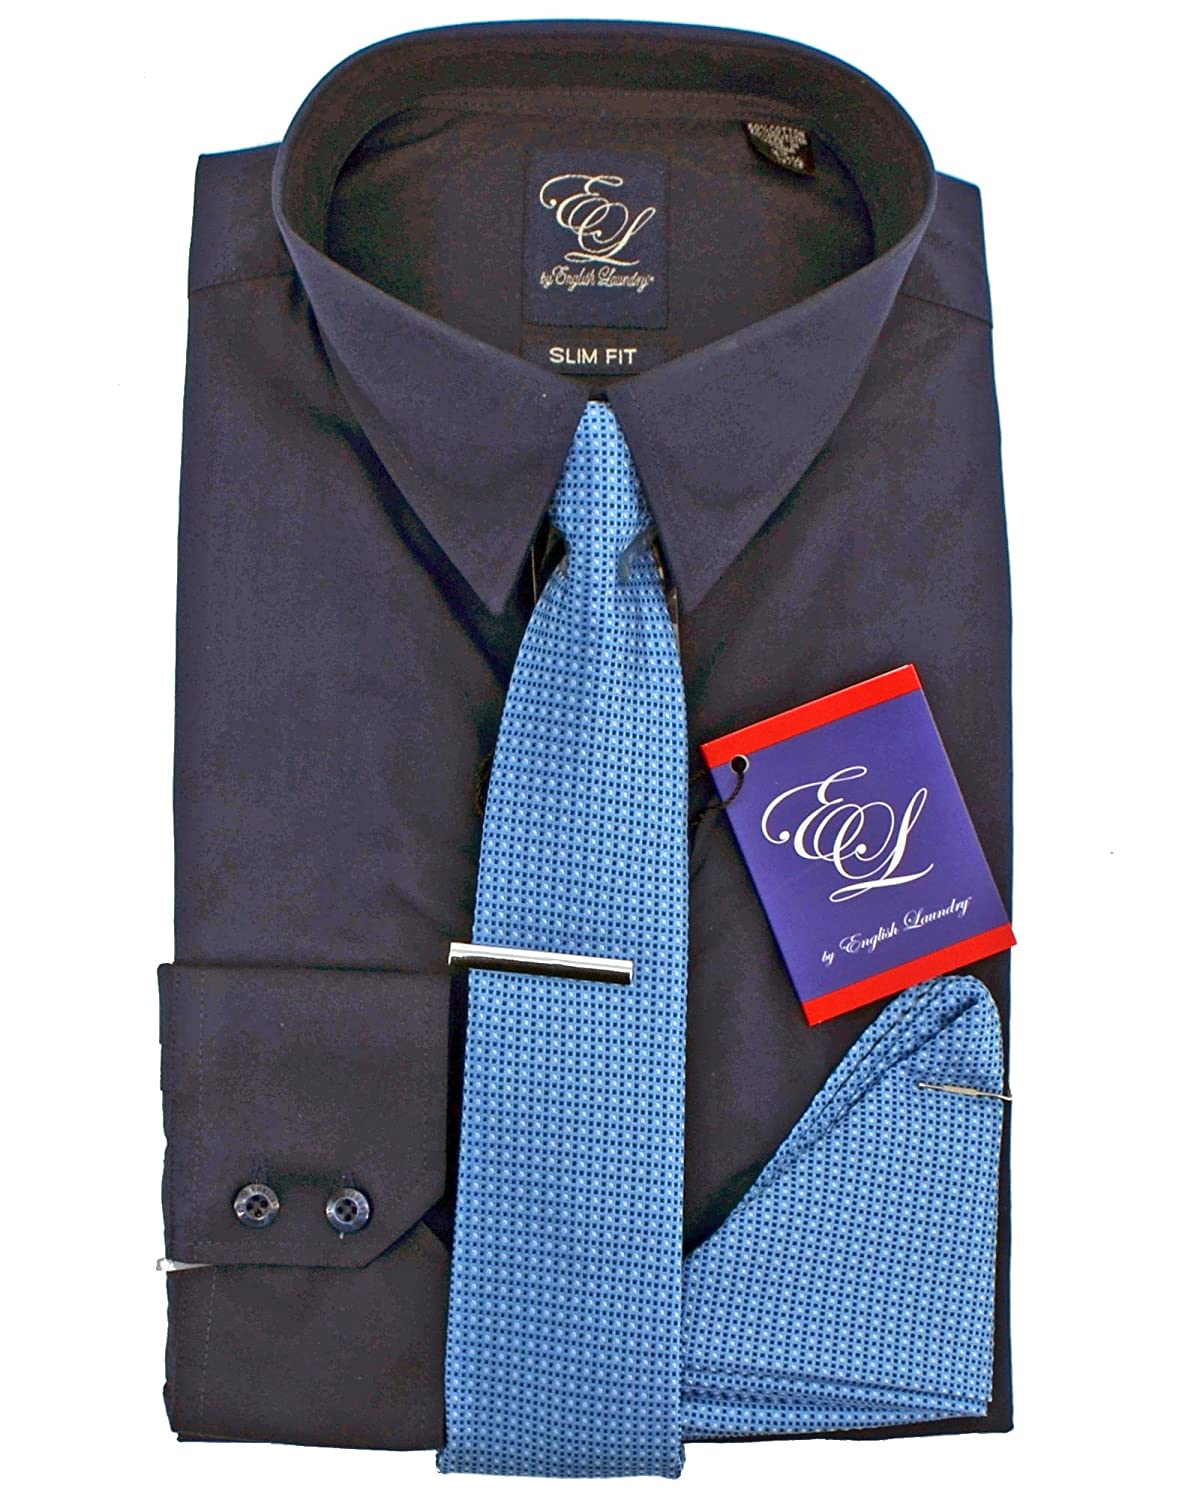 English Laundry Dress Shirt Tie Pocket Square And Tie Bar Combo